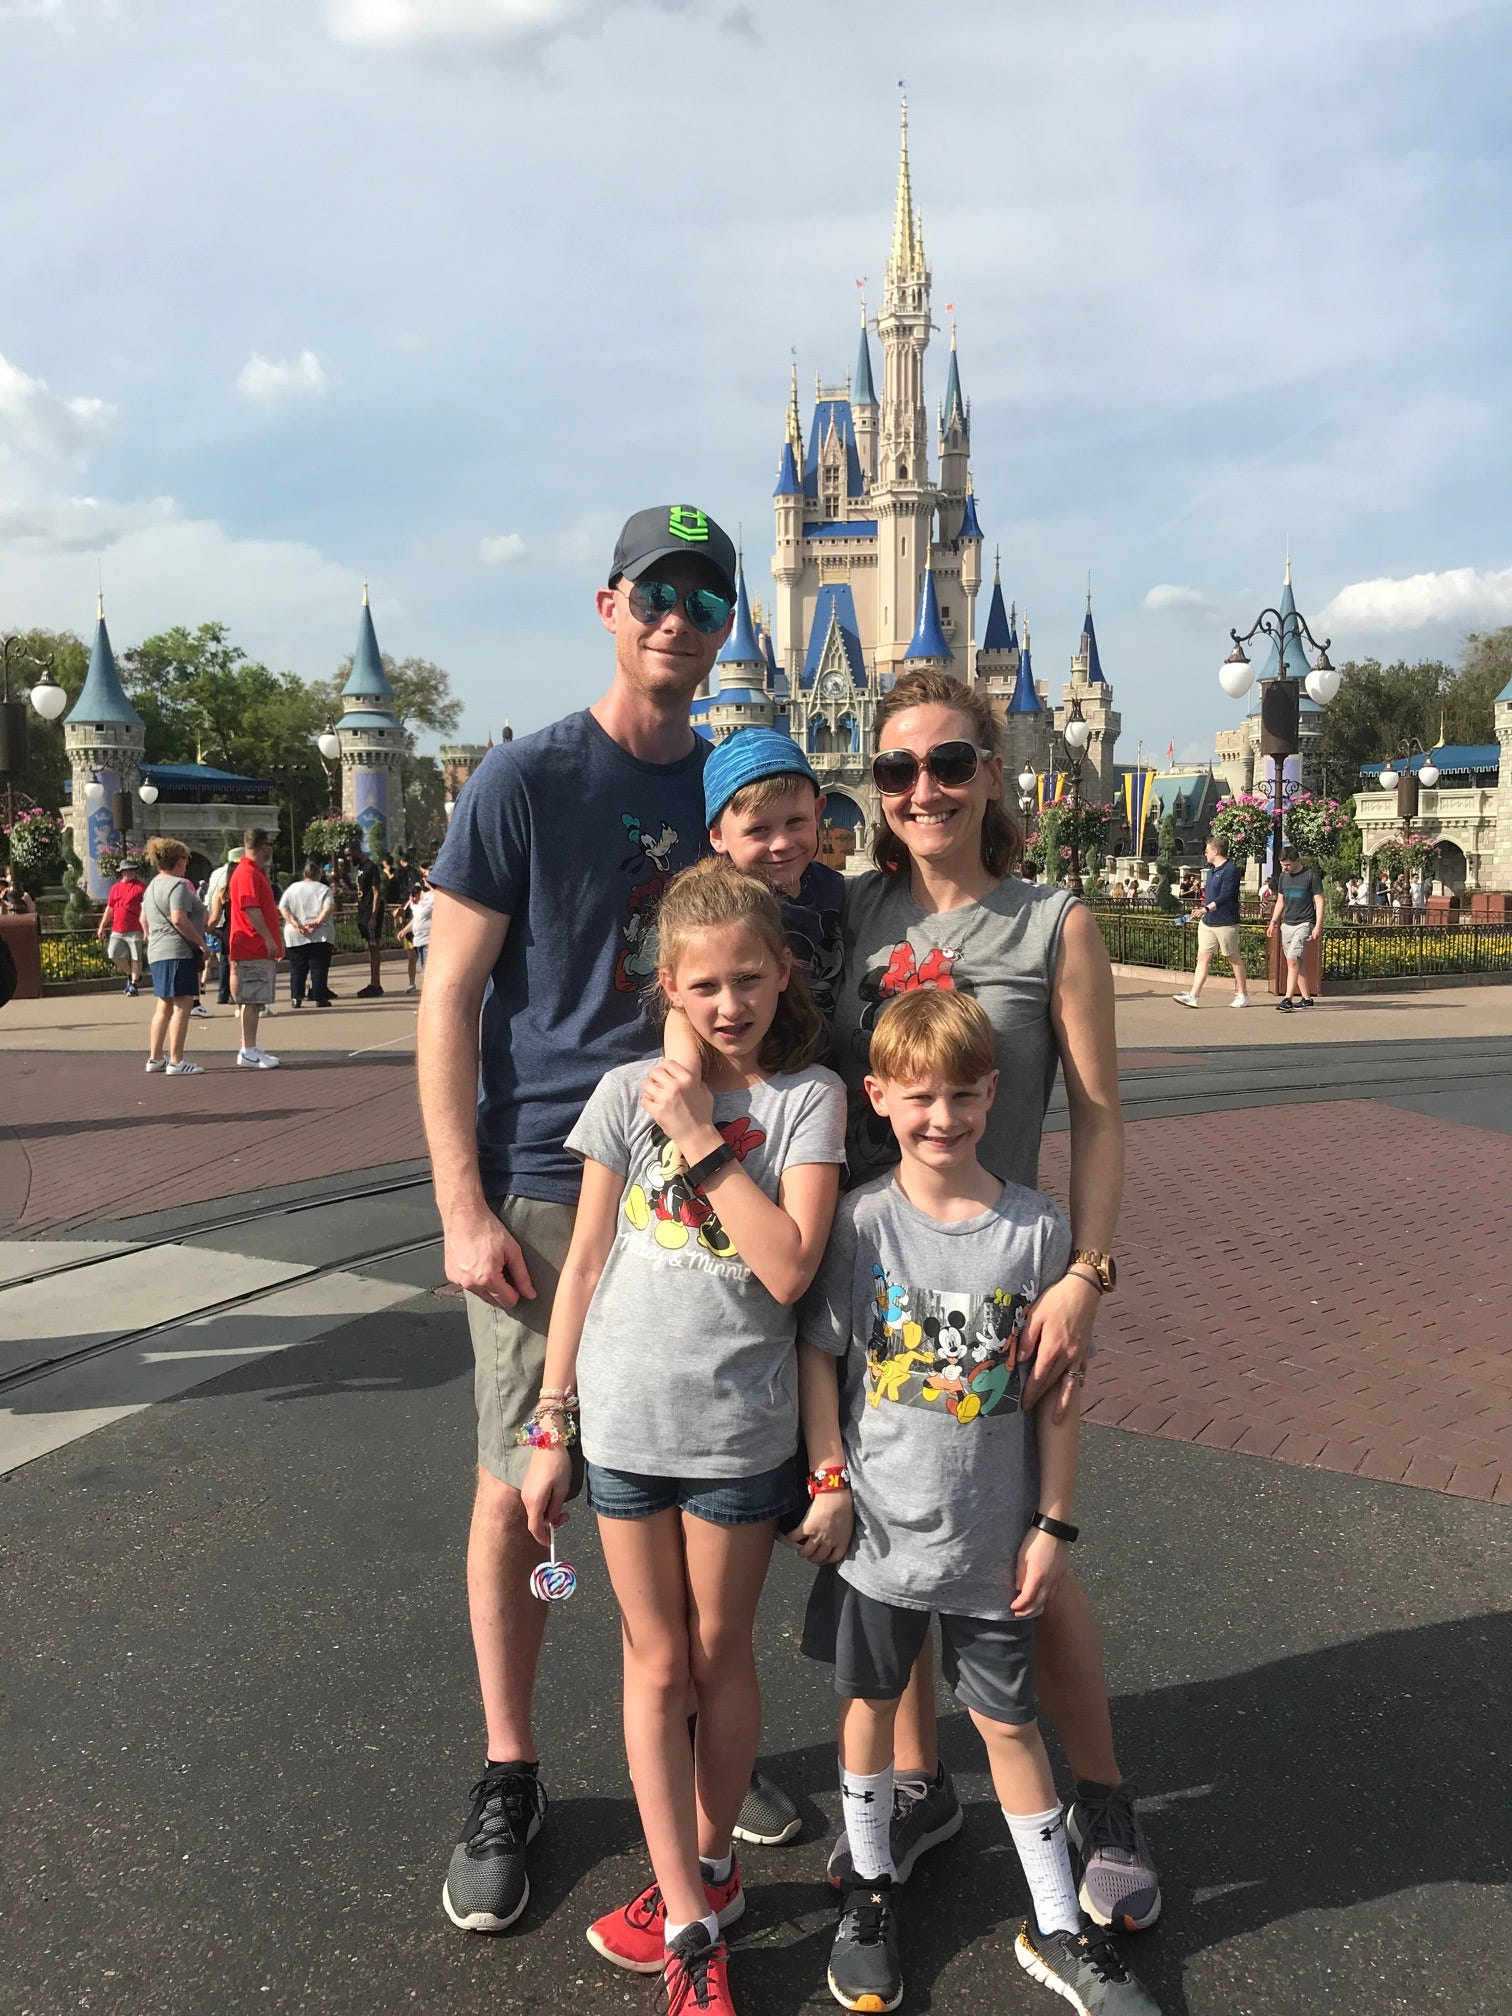 Meghan and Tim Consdorfand their children -- Ashley, 10, Luke, 9, and Tyler, 4 -- visit Magic Kingdom on March 13. The couple said they considered their options for the planned trip after the spread of the coronavirus, but opted to stick with their plans and take all the steps they could to wash up well and often.